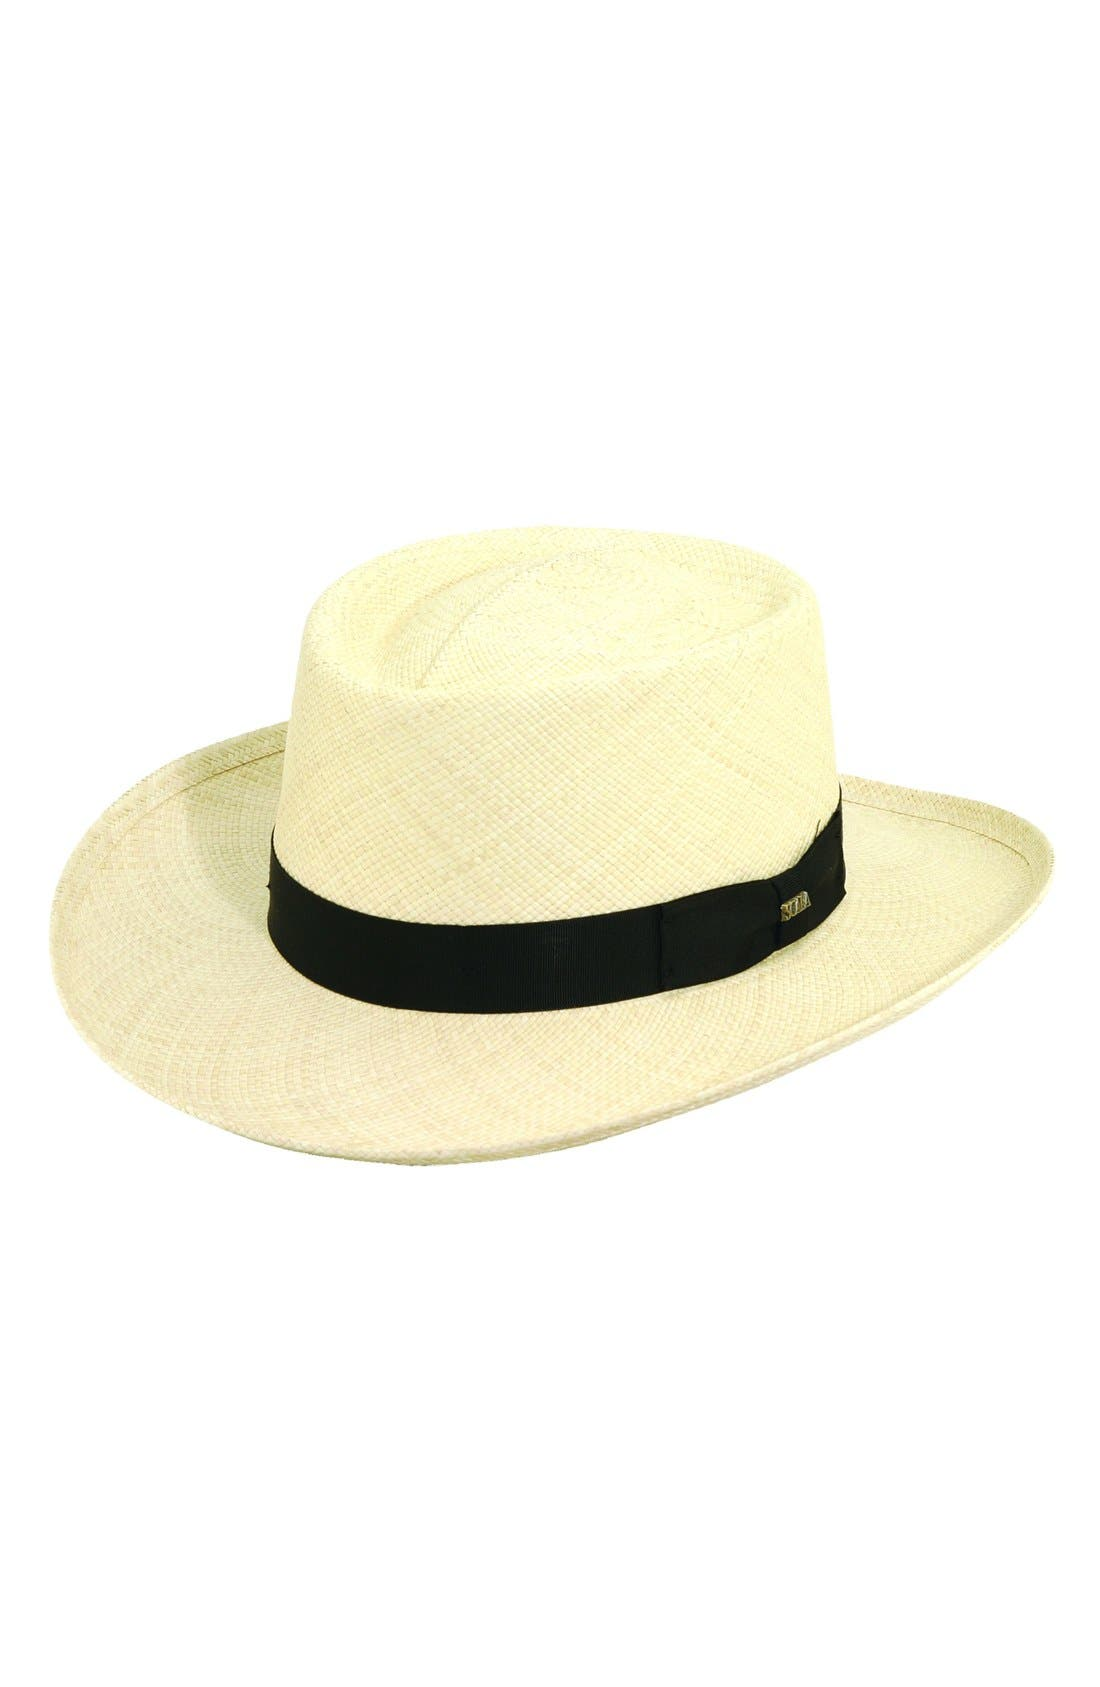 Panama Straw Gambler Hat,                         Main,                         color, NATURAL